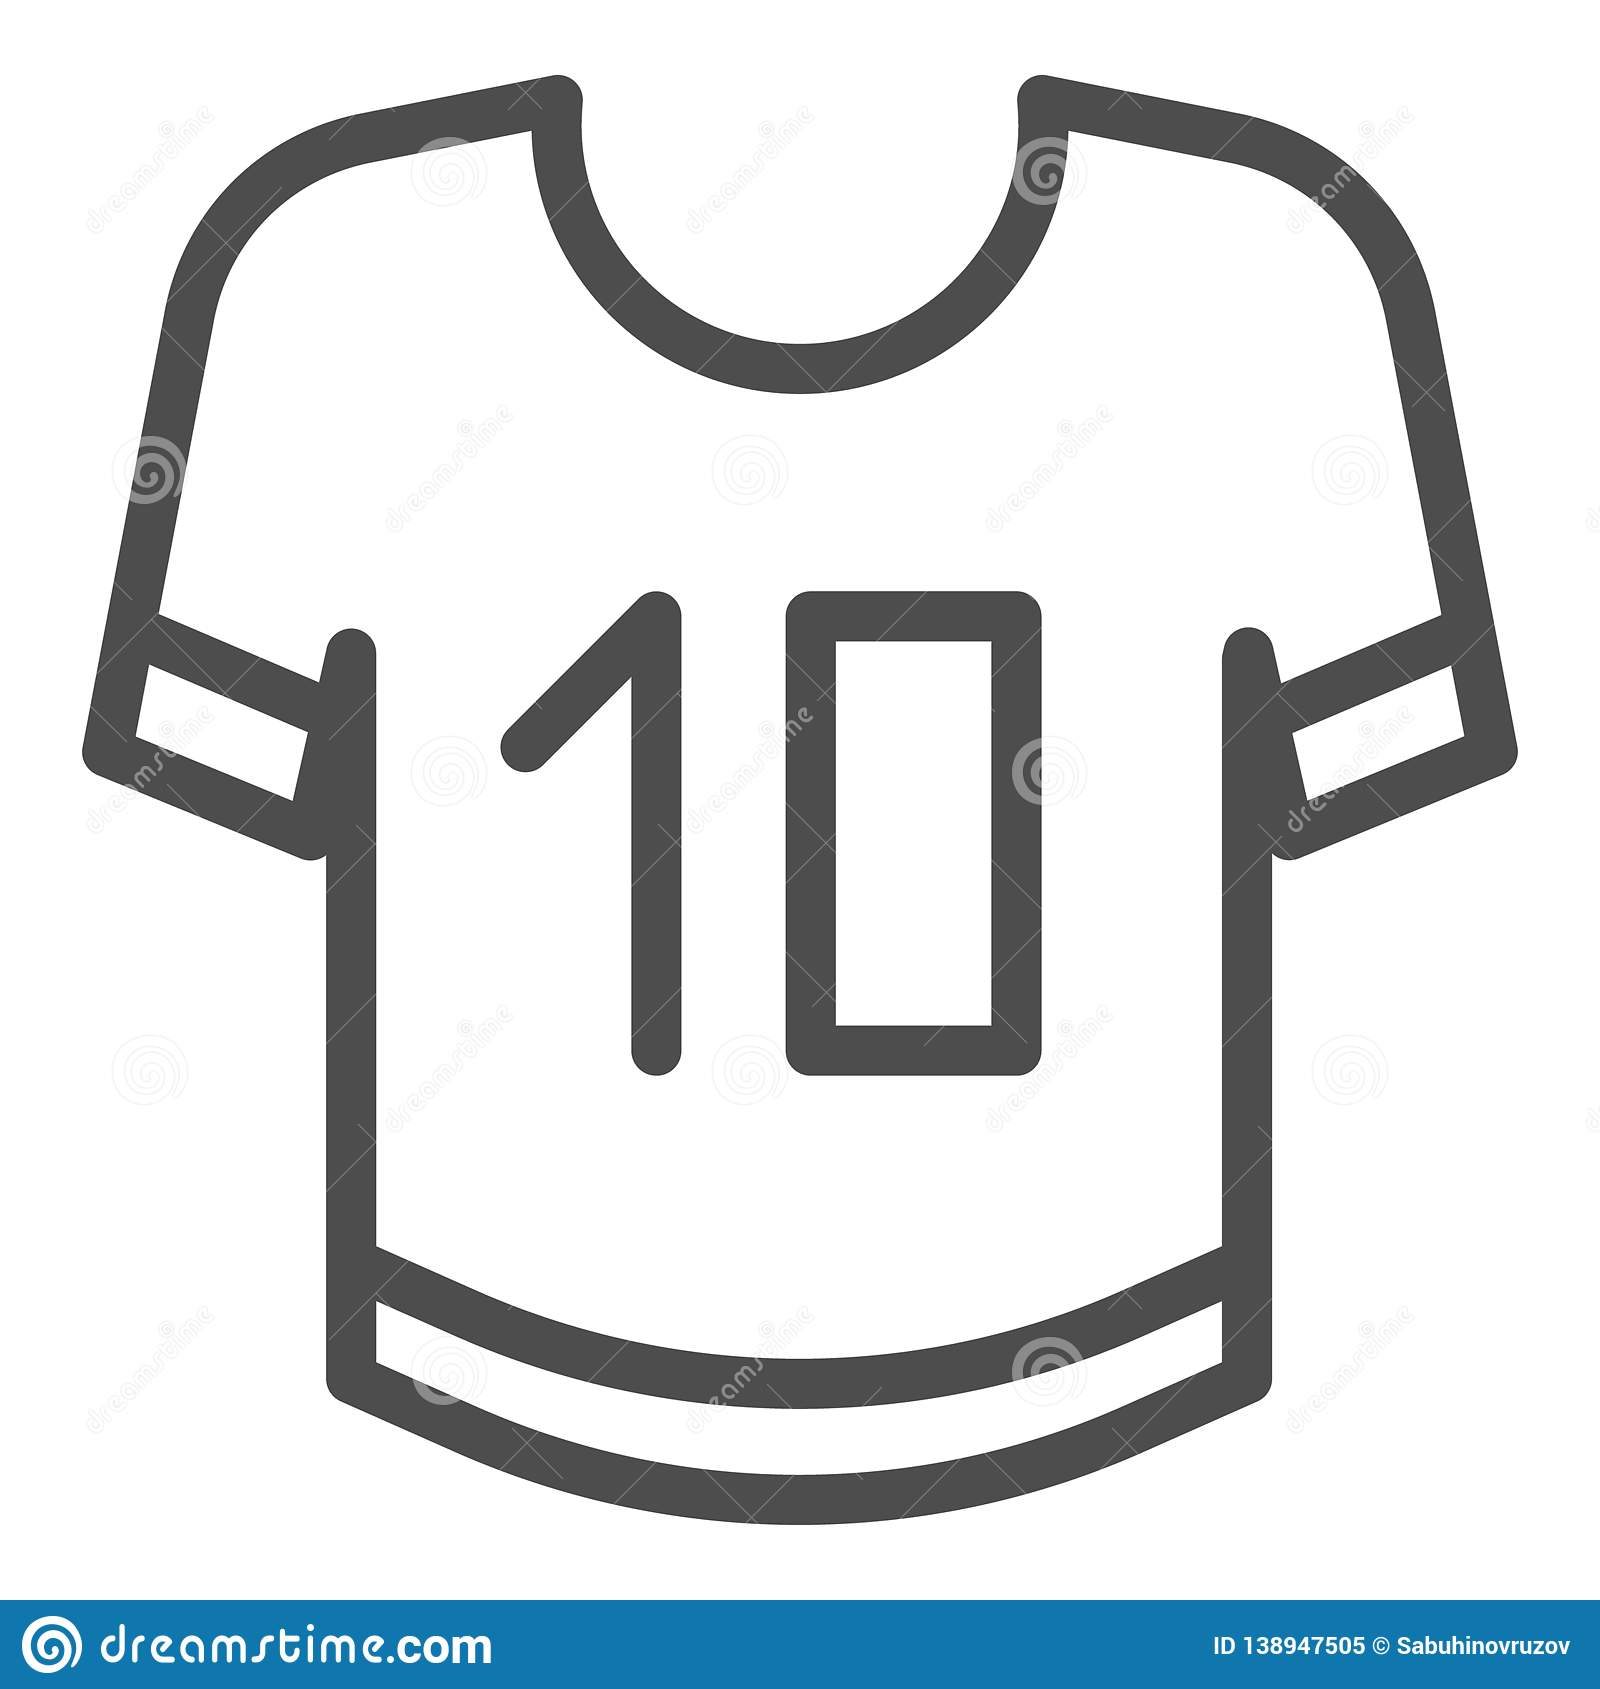 T Shirt Line Icon Clothing Vector Illustration Isolated On White Sport Clothes Outline Style Design Designed For Web Stock Vector Illustration Of Sign Image 138947505